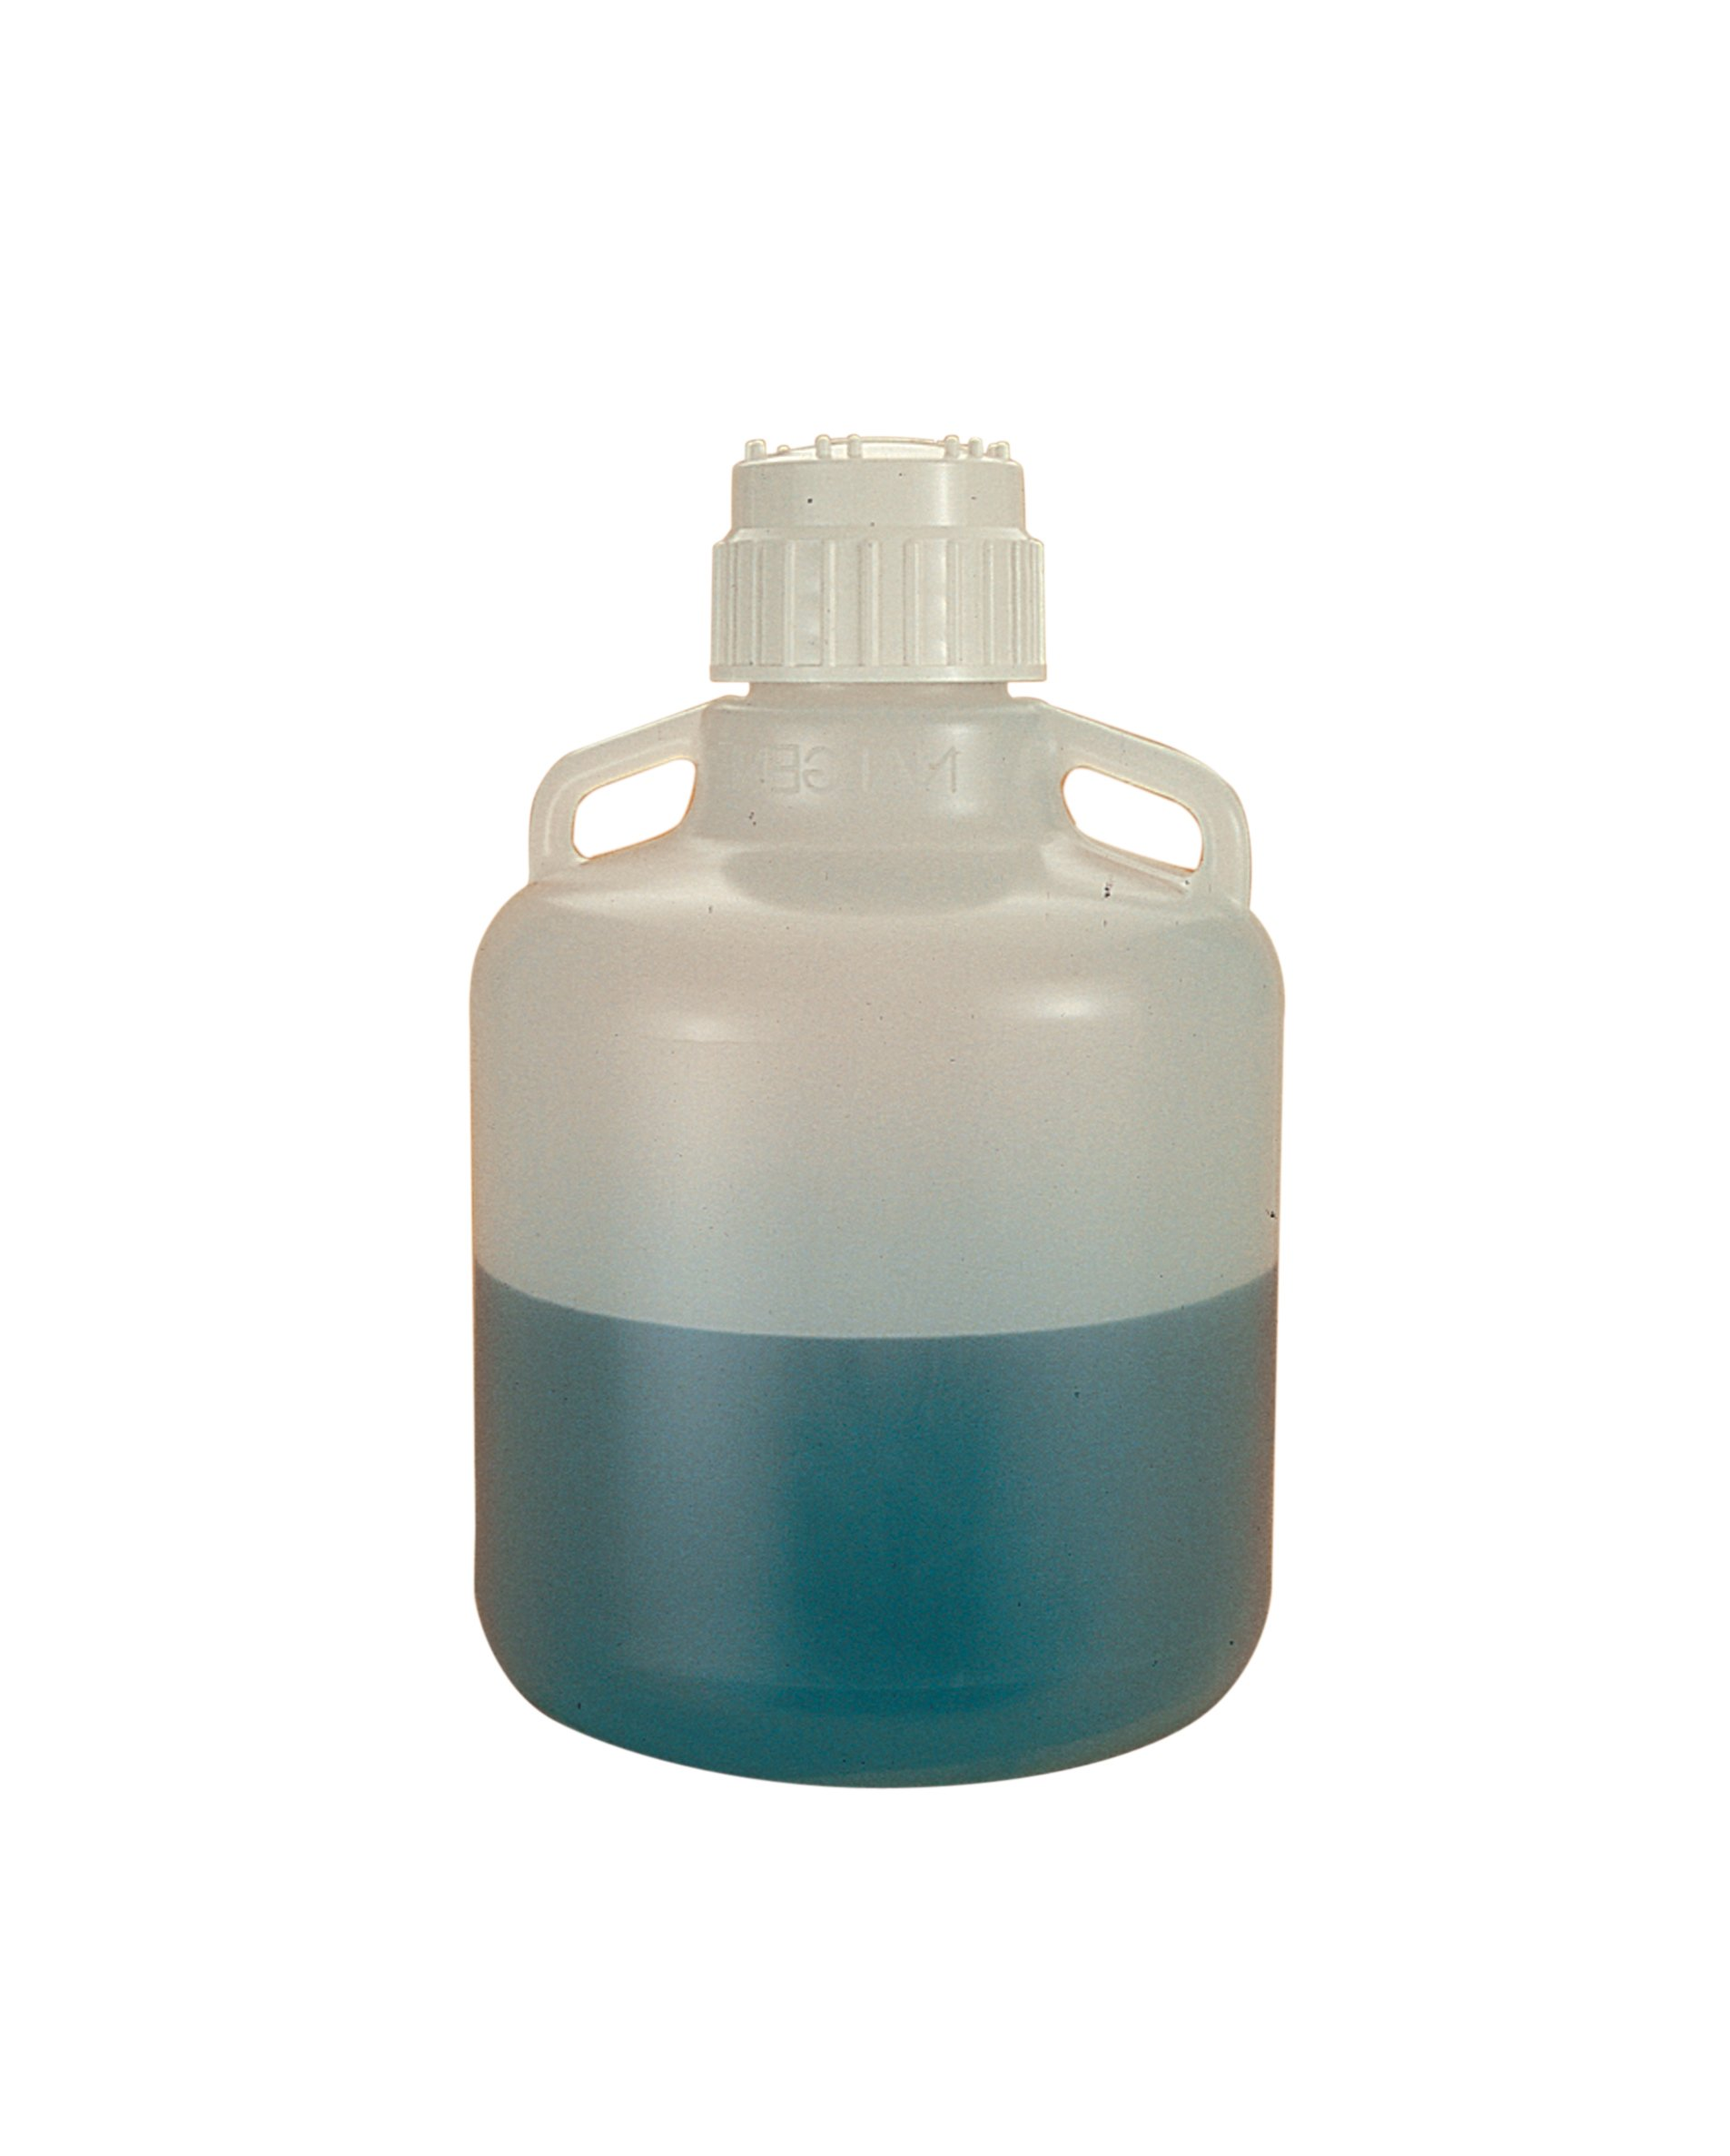 Nalgene Polypropylene Carboys with Handles Autoclavable, 10 Liters Capacity